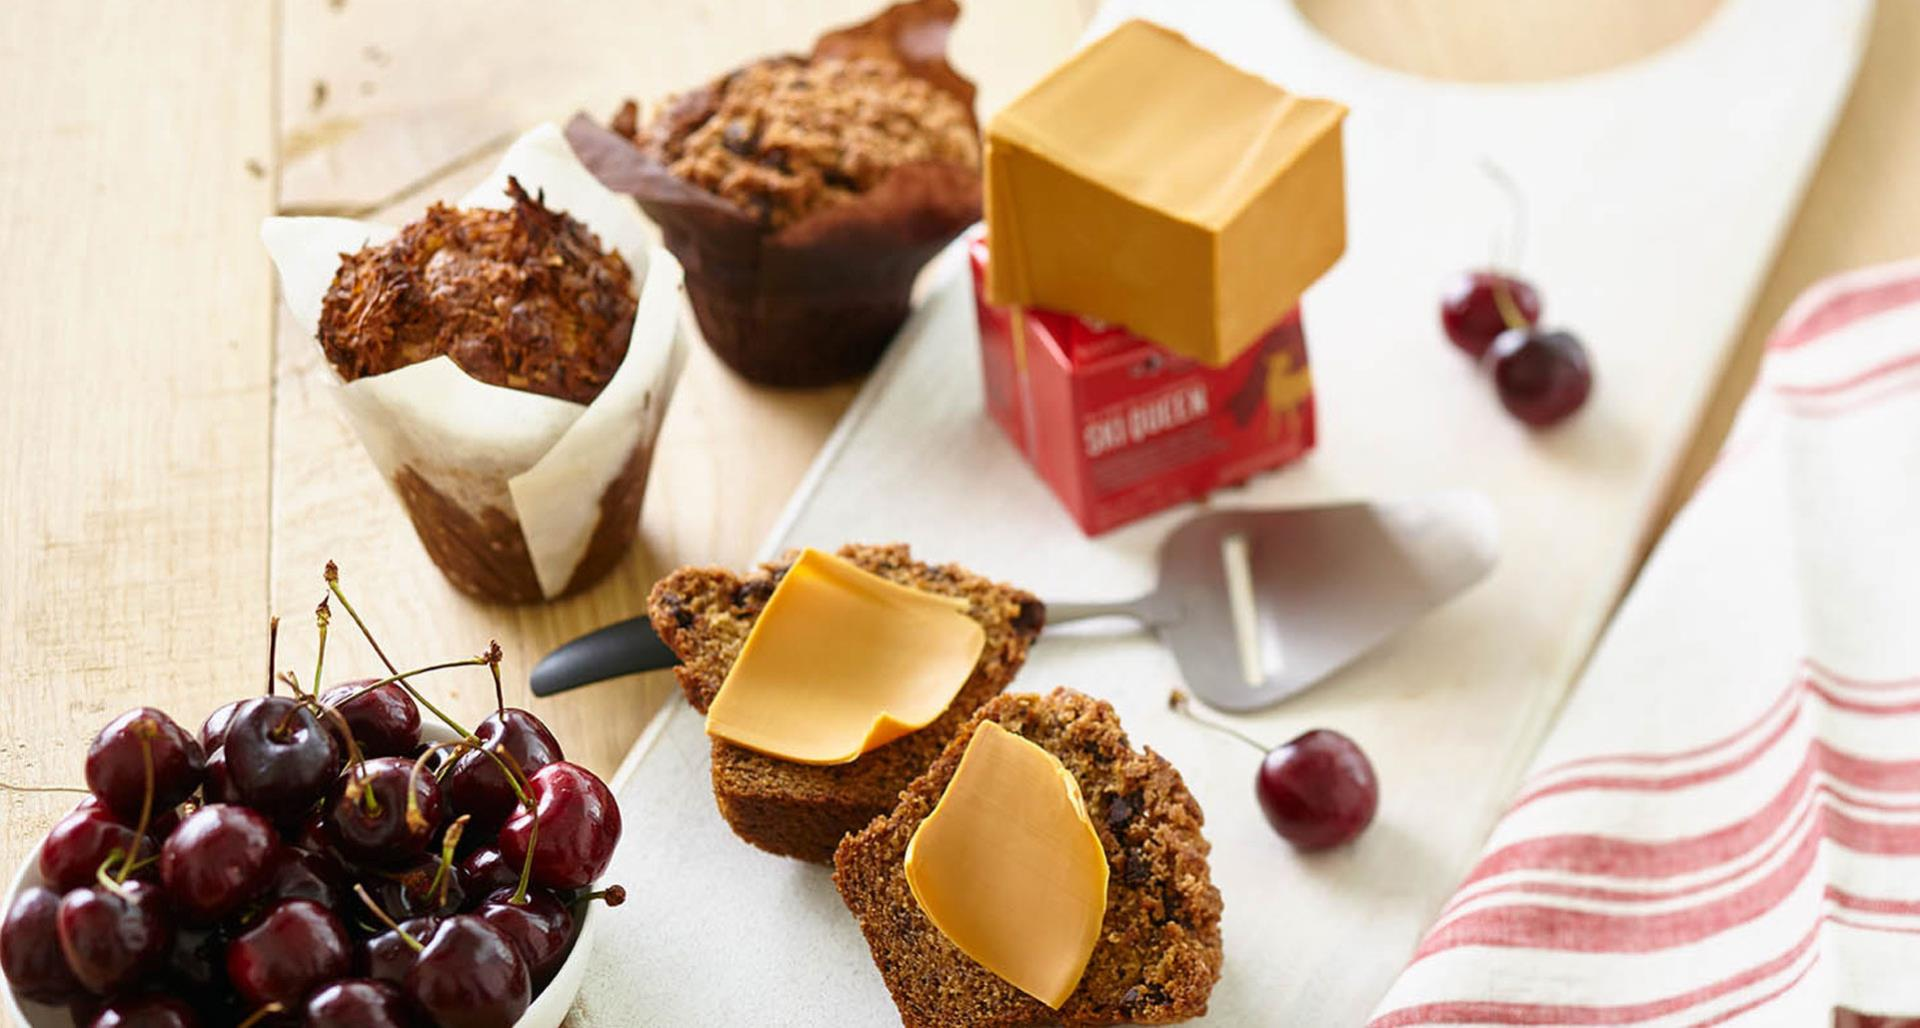 Brunost Featured in 2019's Top Cheese Trends